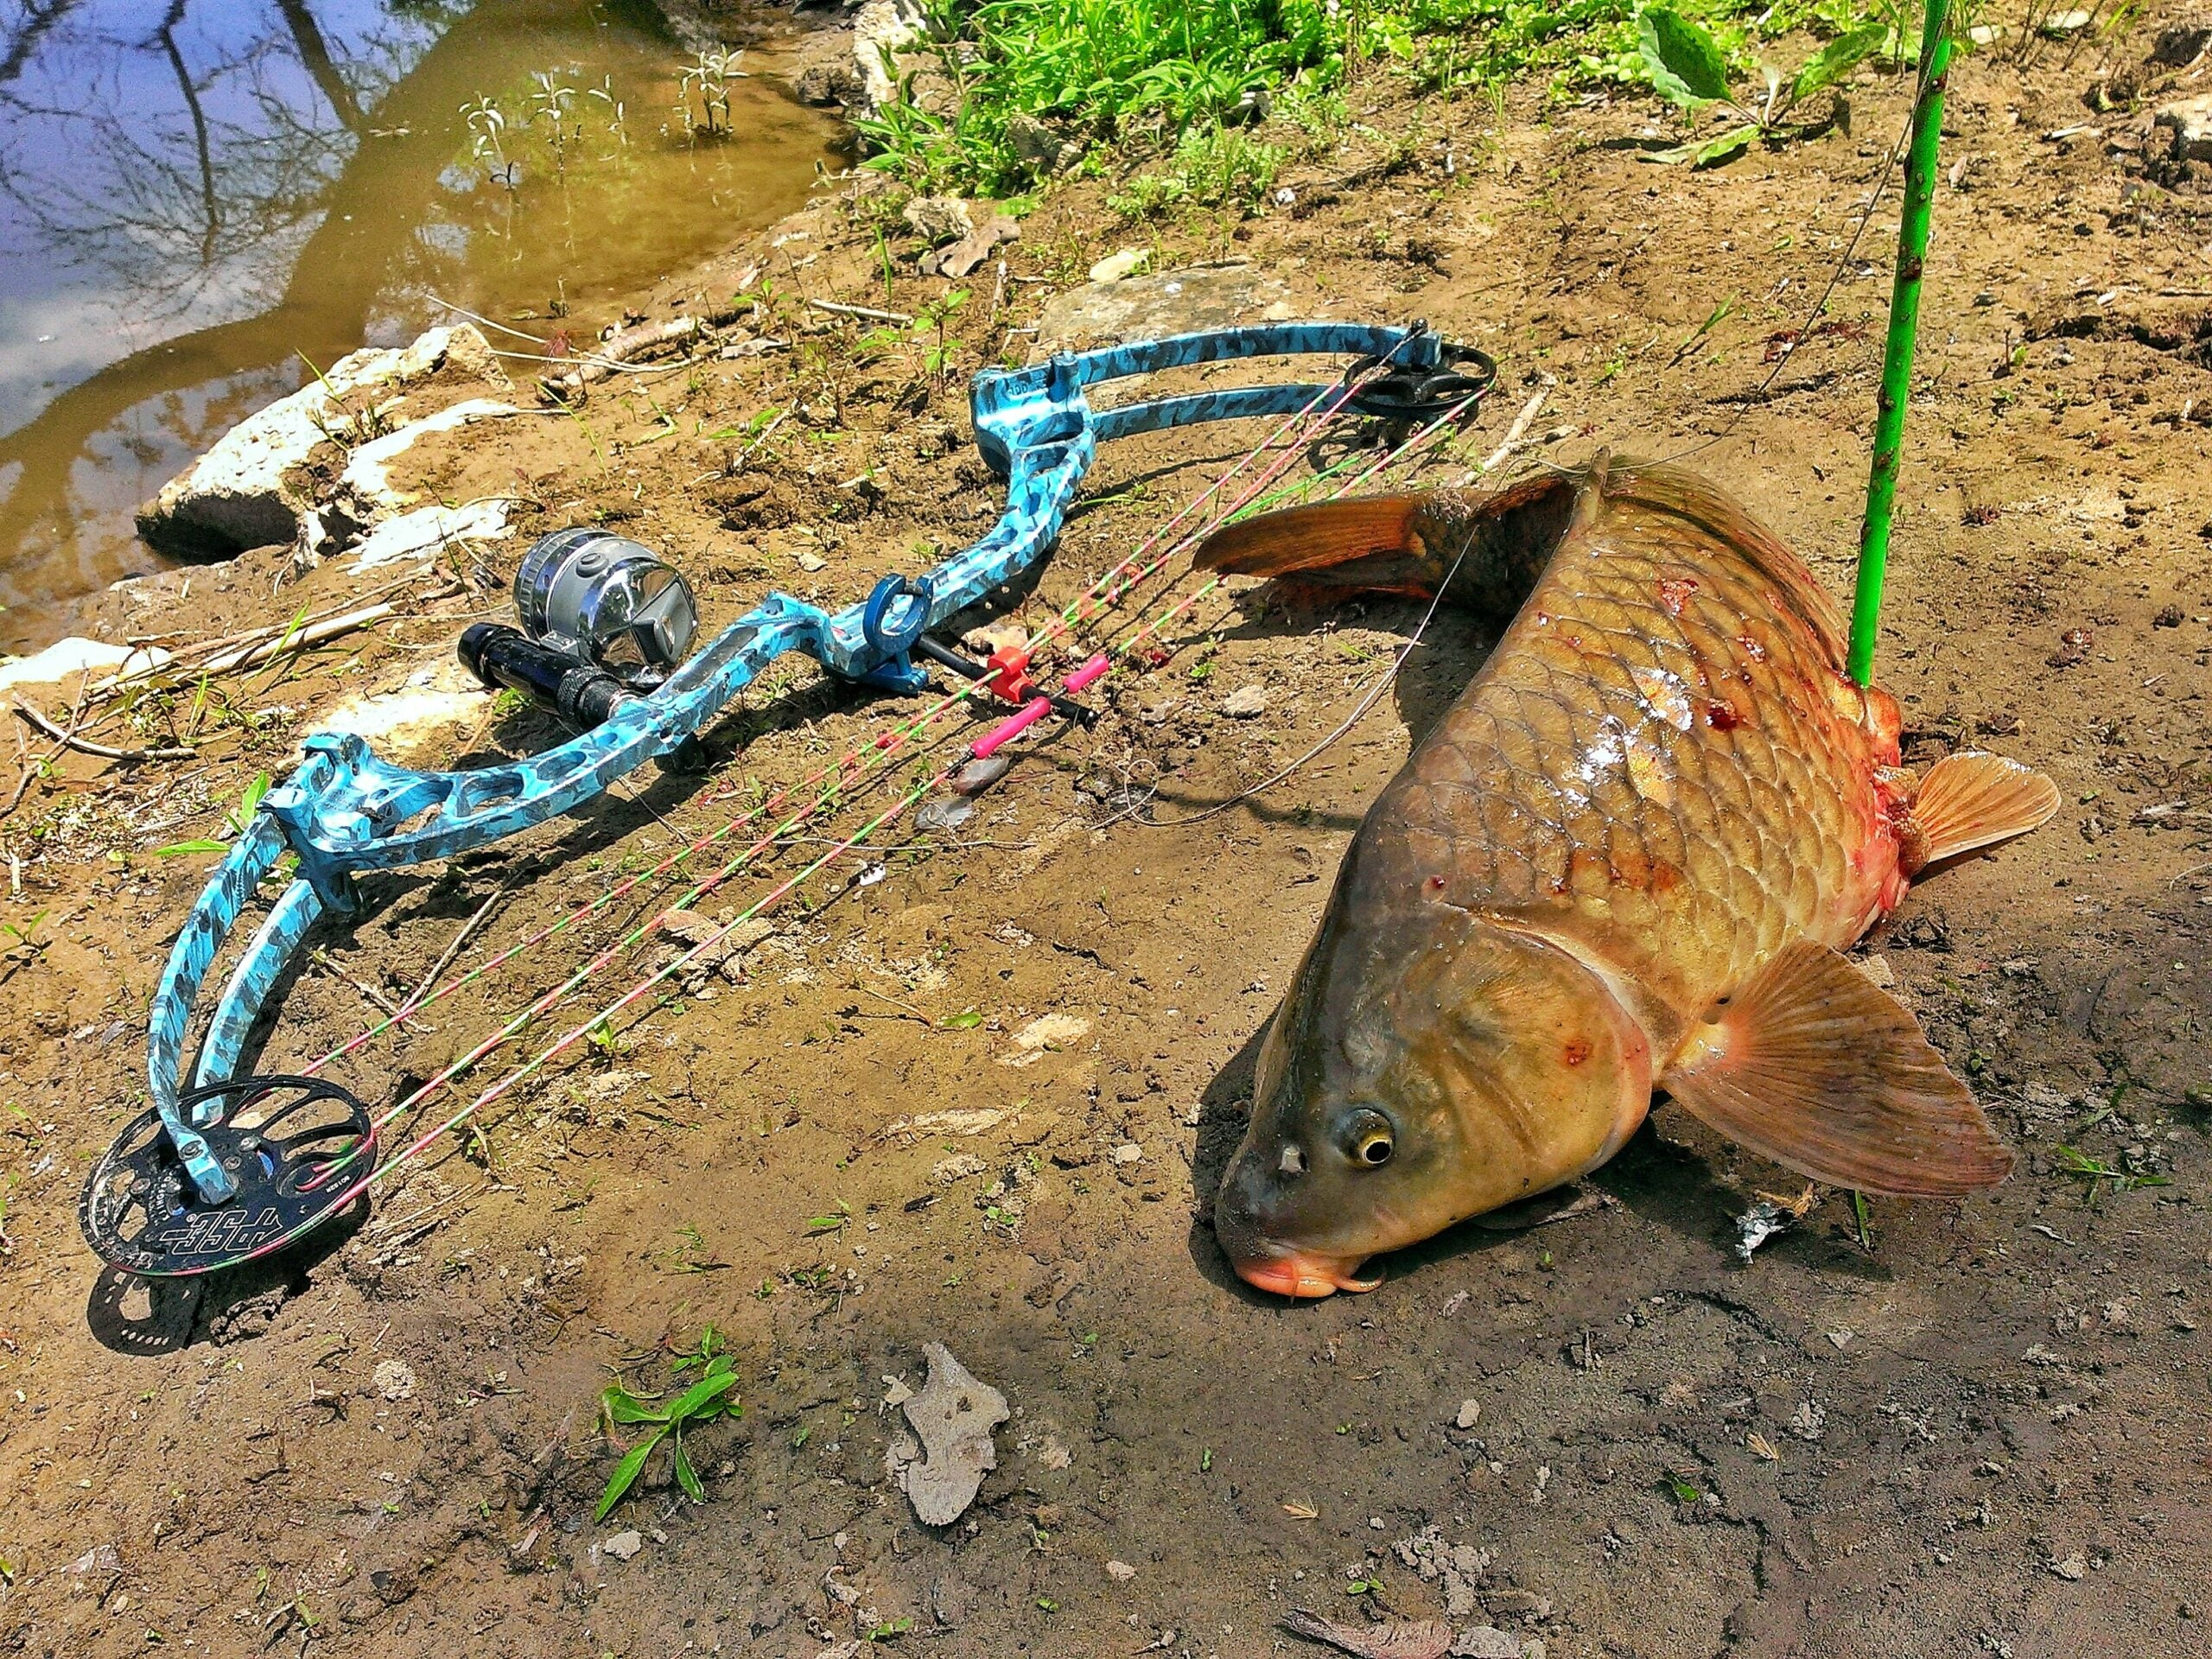 Knowing where the fish you're targeting live, makes hunting them easier.